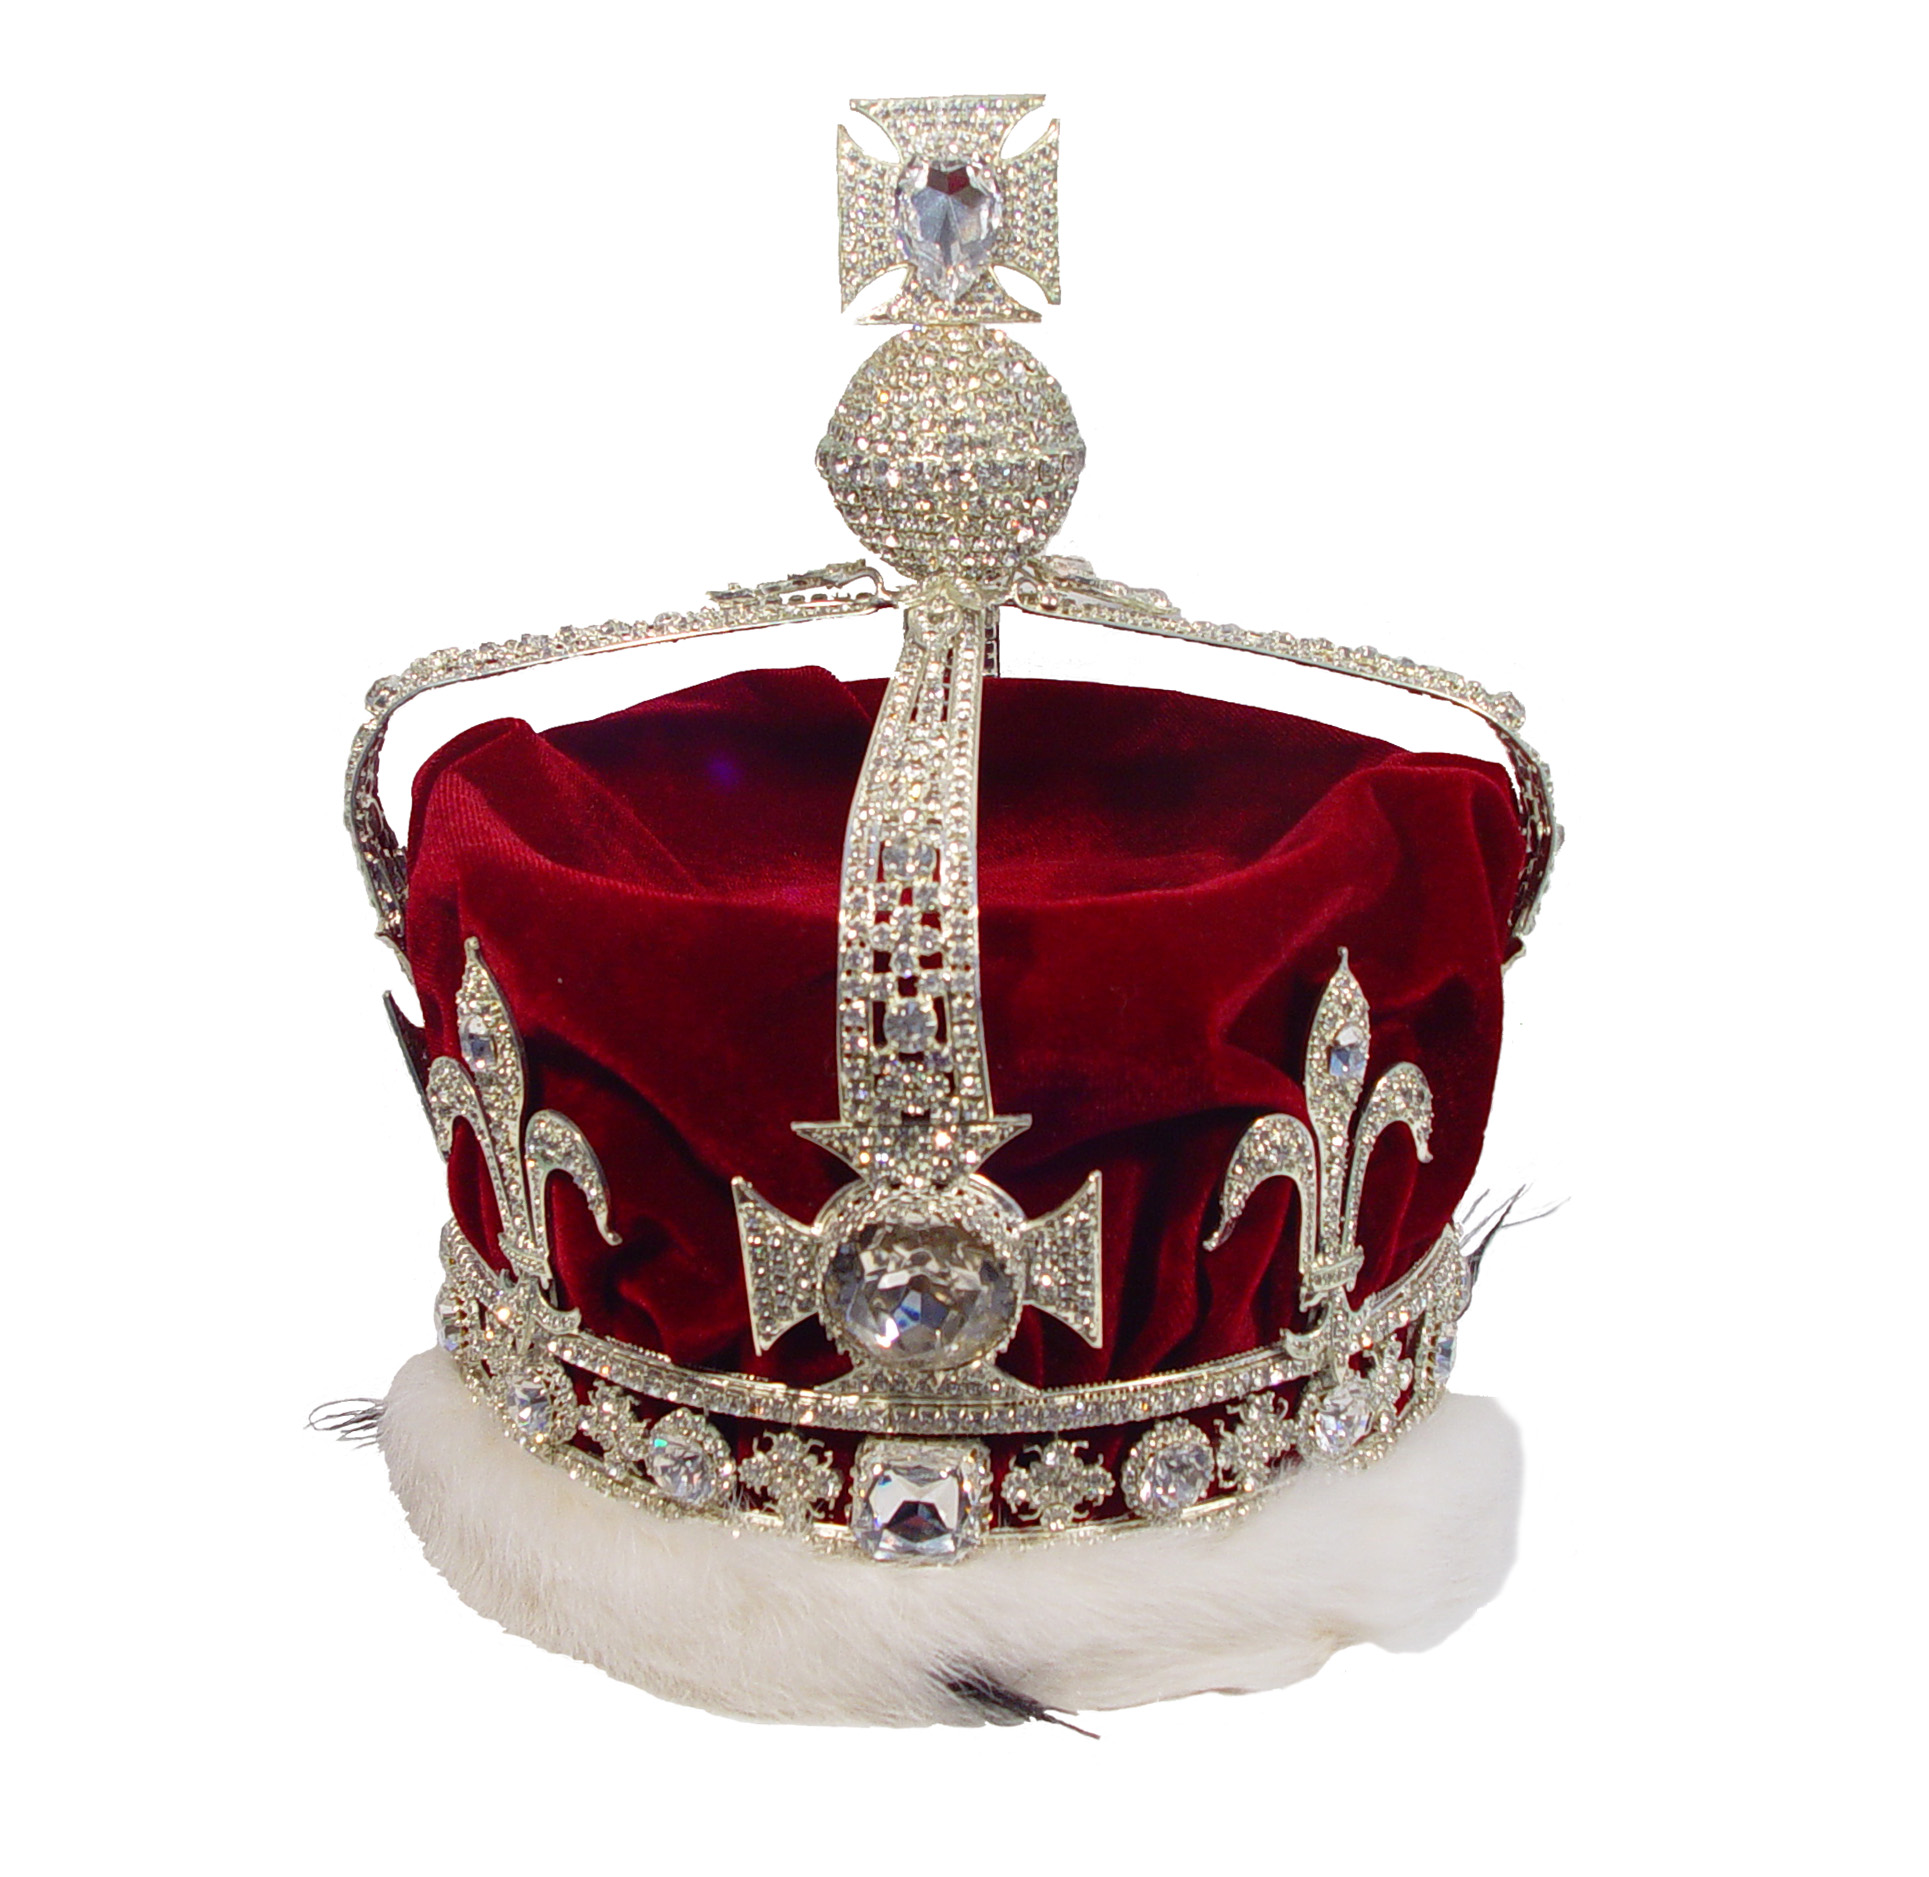 The British Crown Jewels | Jeremy Turcotte, Trained Journalist